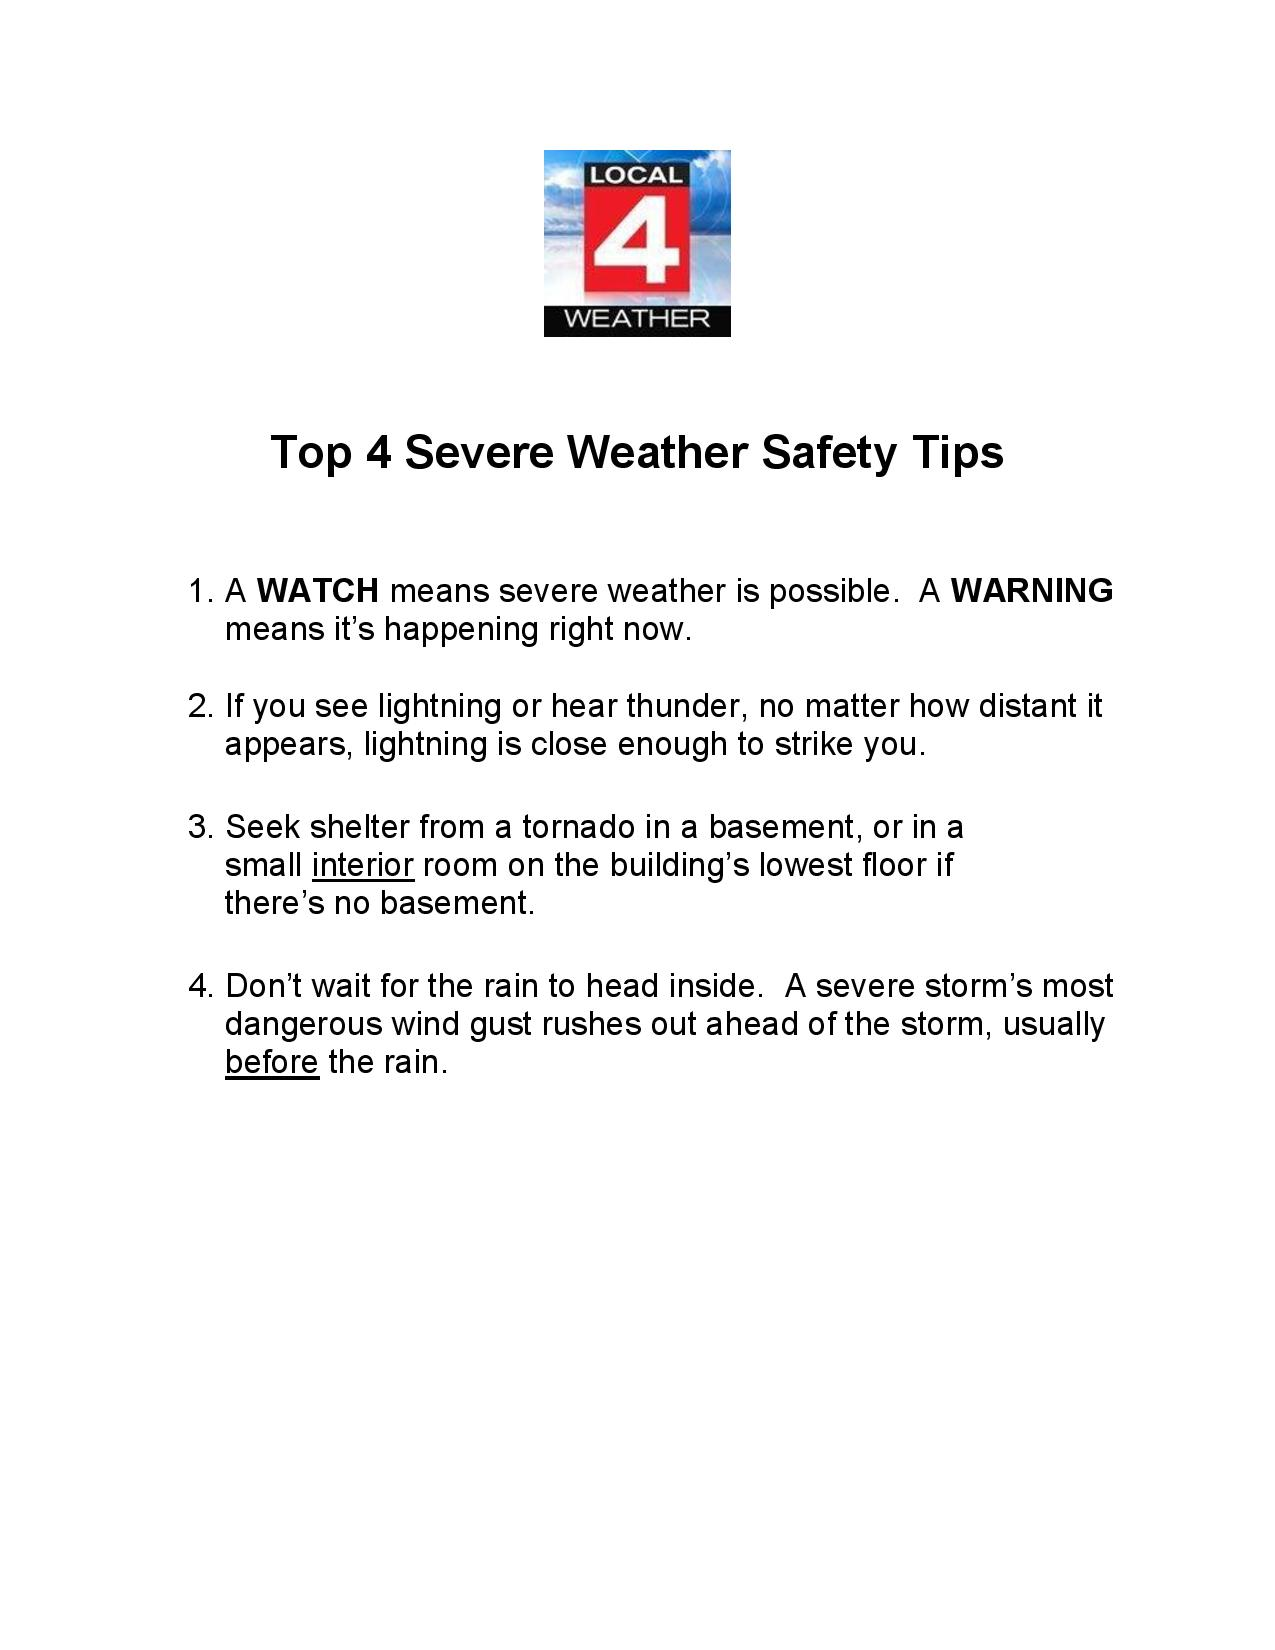 Top 4 Weather Safety Tips